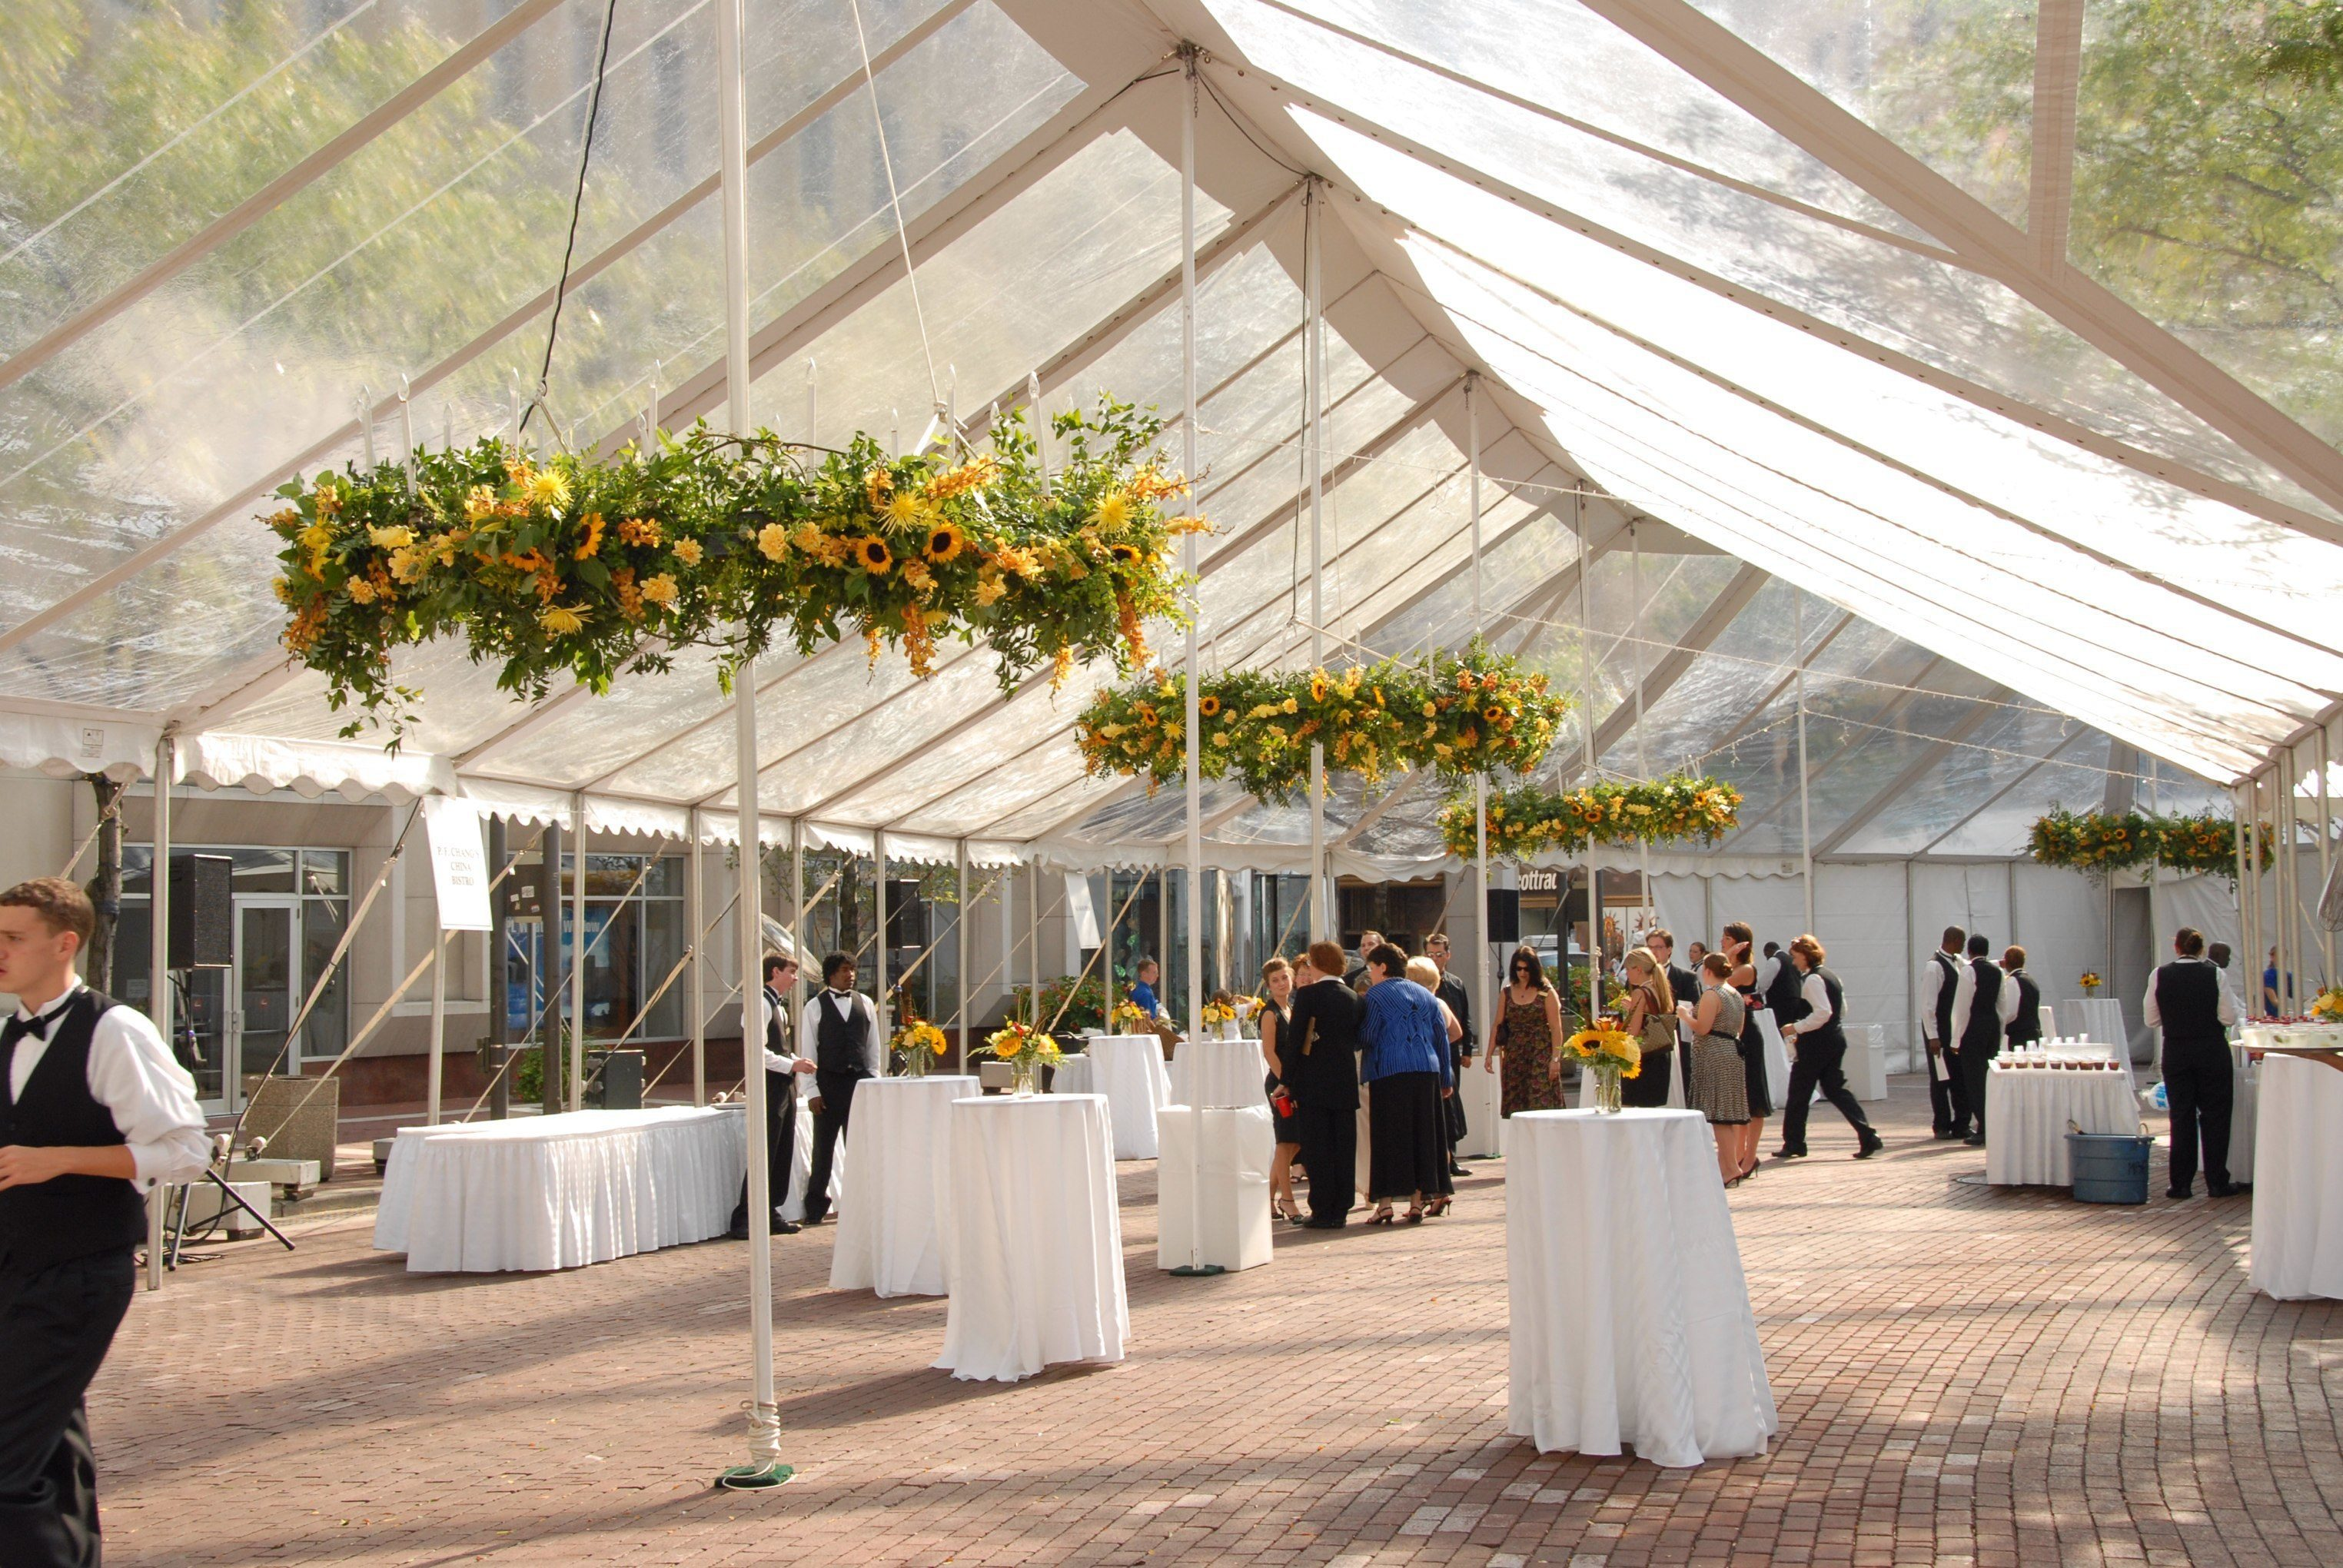 Tents For Weddings For Rent How Do You Rent A Wedding Tent Prices